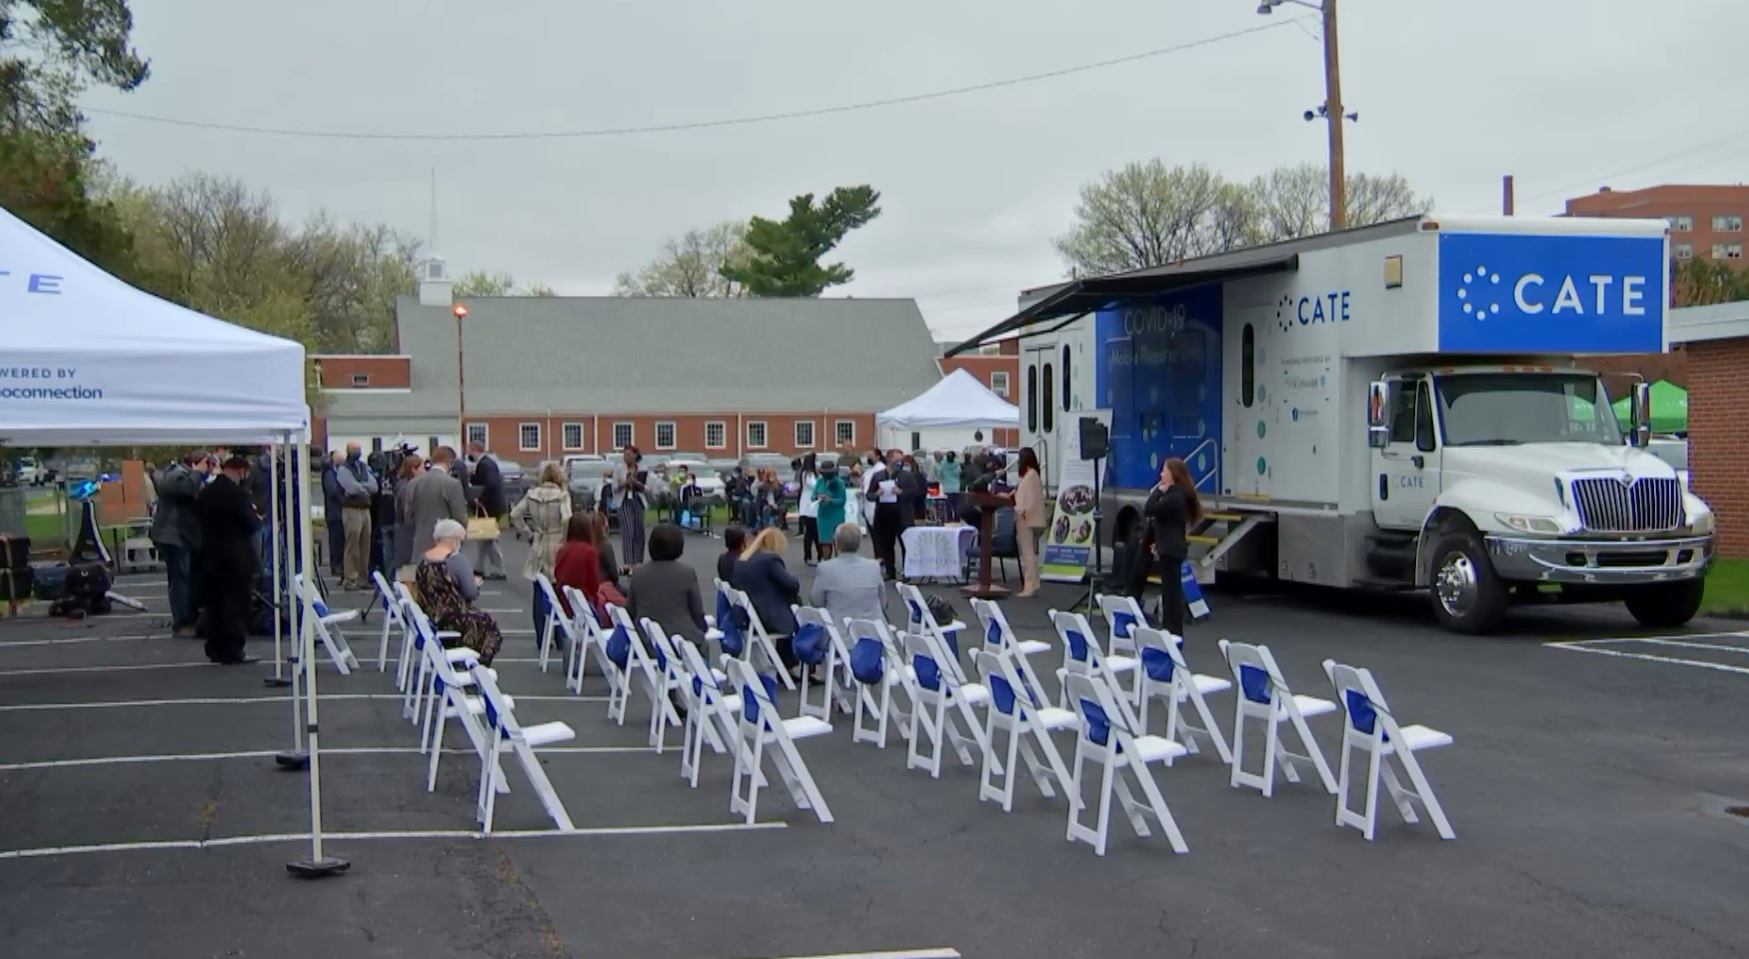 The CATE vehicle, right, serves as the backdrop for a media briefing on Pennsylvania's Covid-19 vaccine mobile clinic initiative on Monday, April 12, 2021. (Source: Pa.gov)